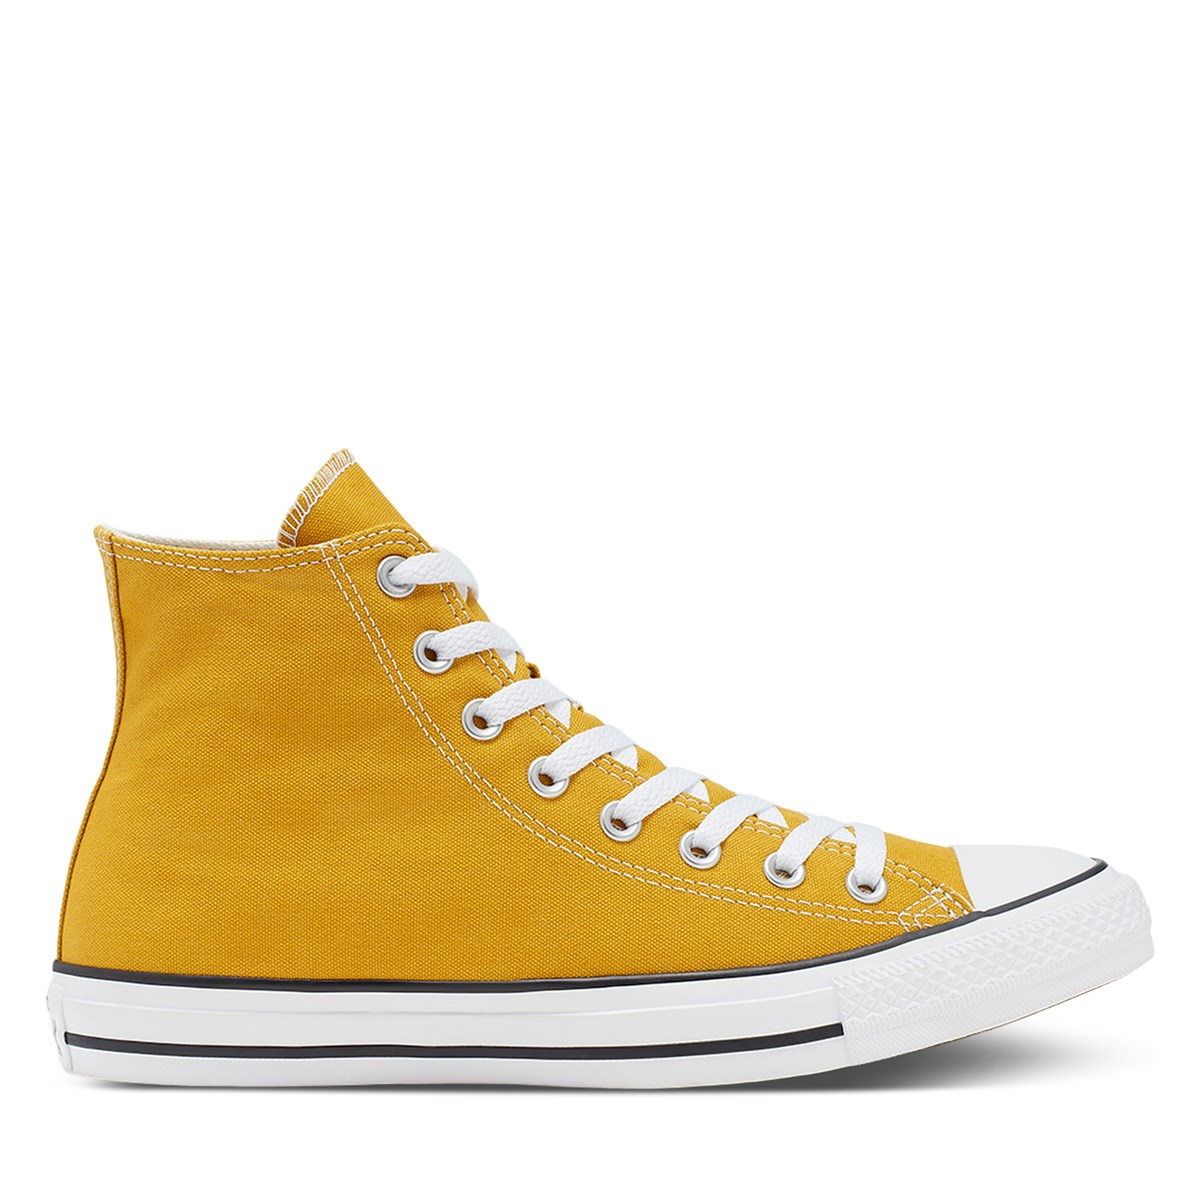 Women's Chuck Taylor High Top Sneakers in Gold